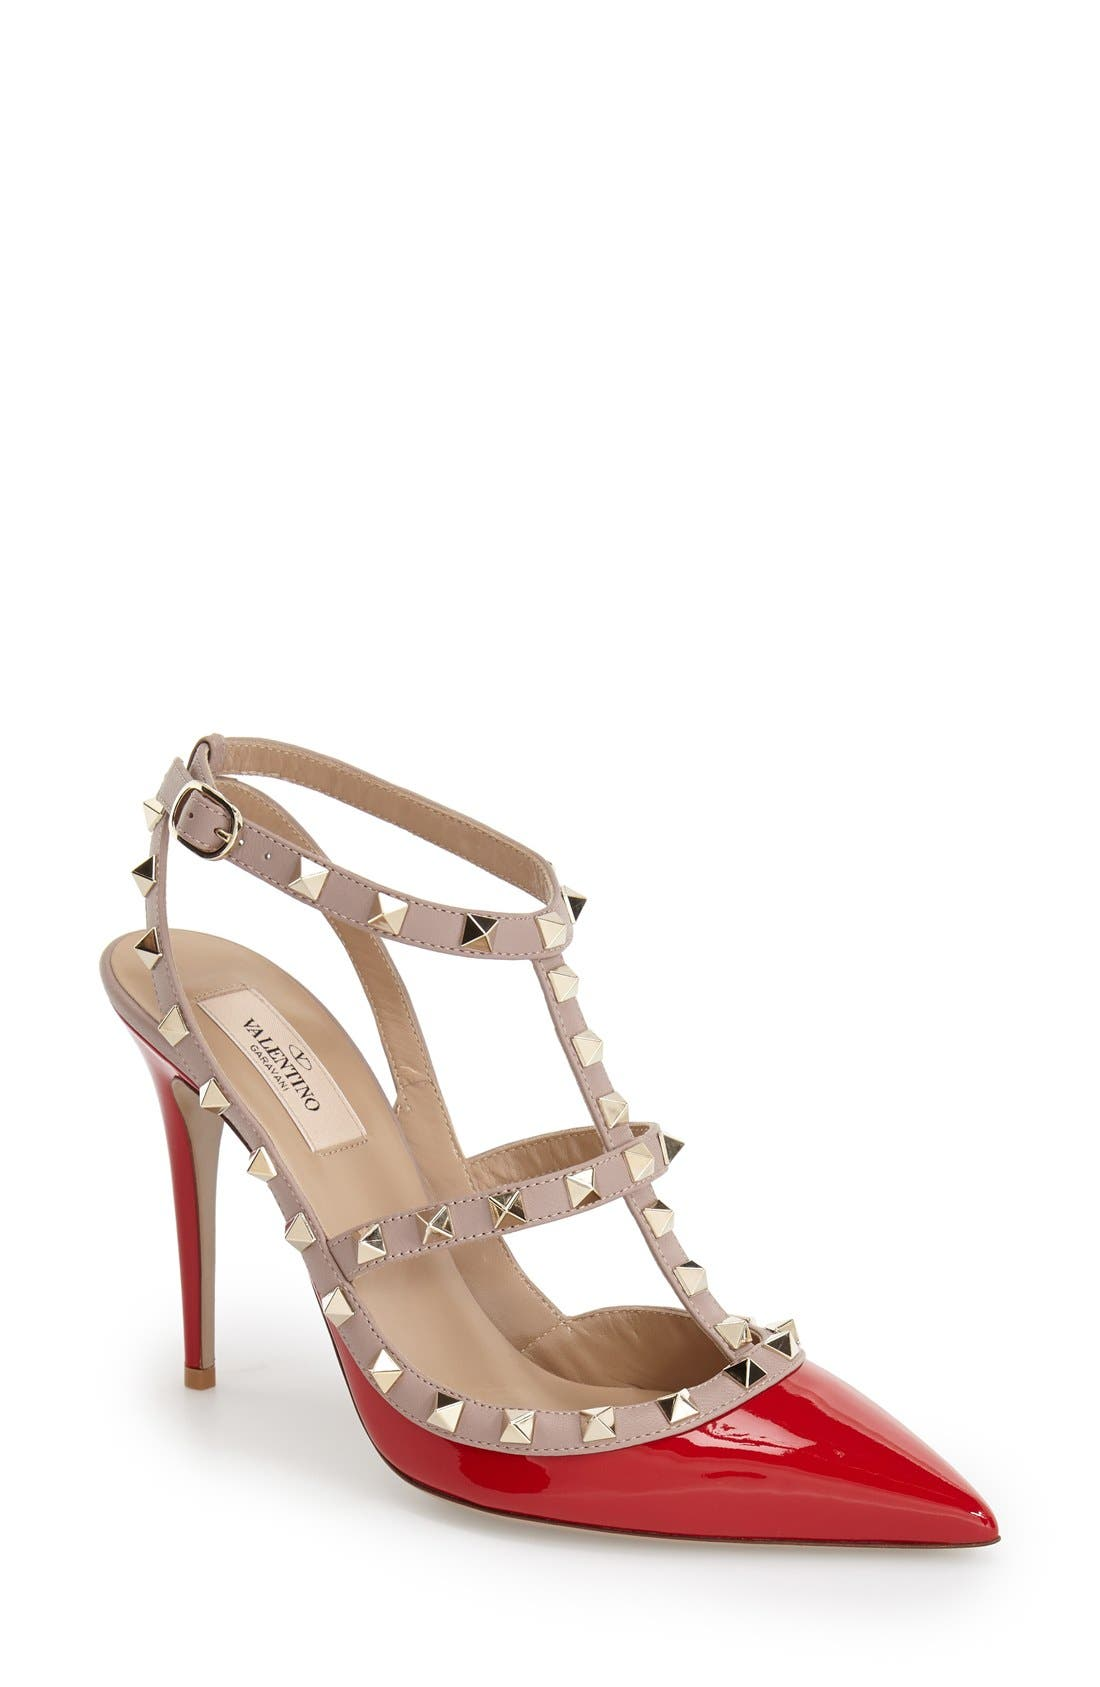 Valentino Shoes | www.pixshark.com - Images Galleries With ...